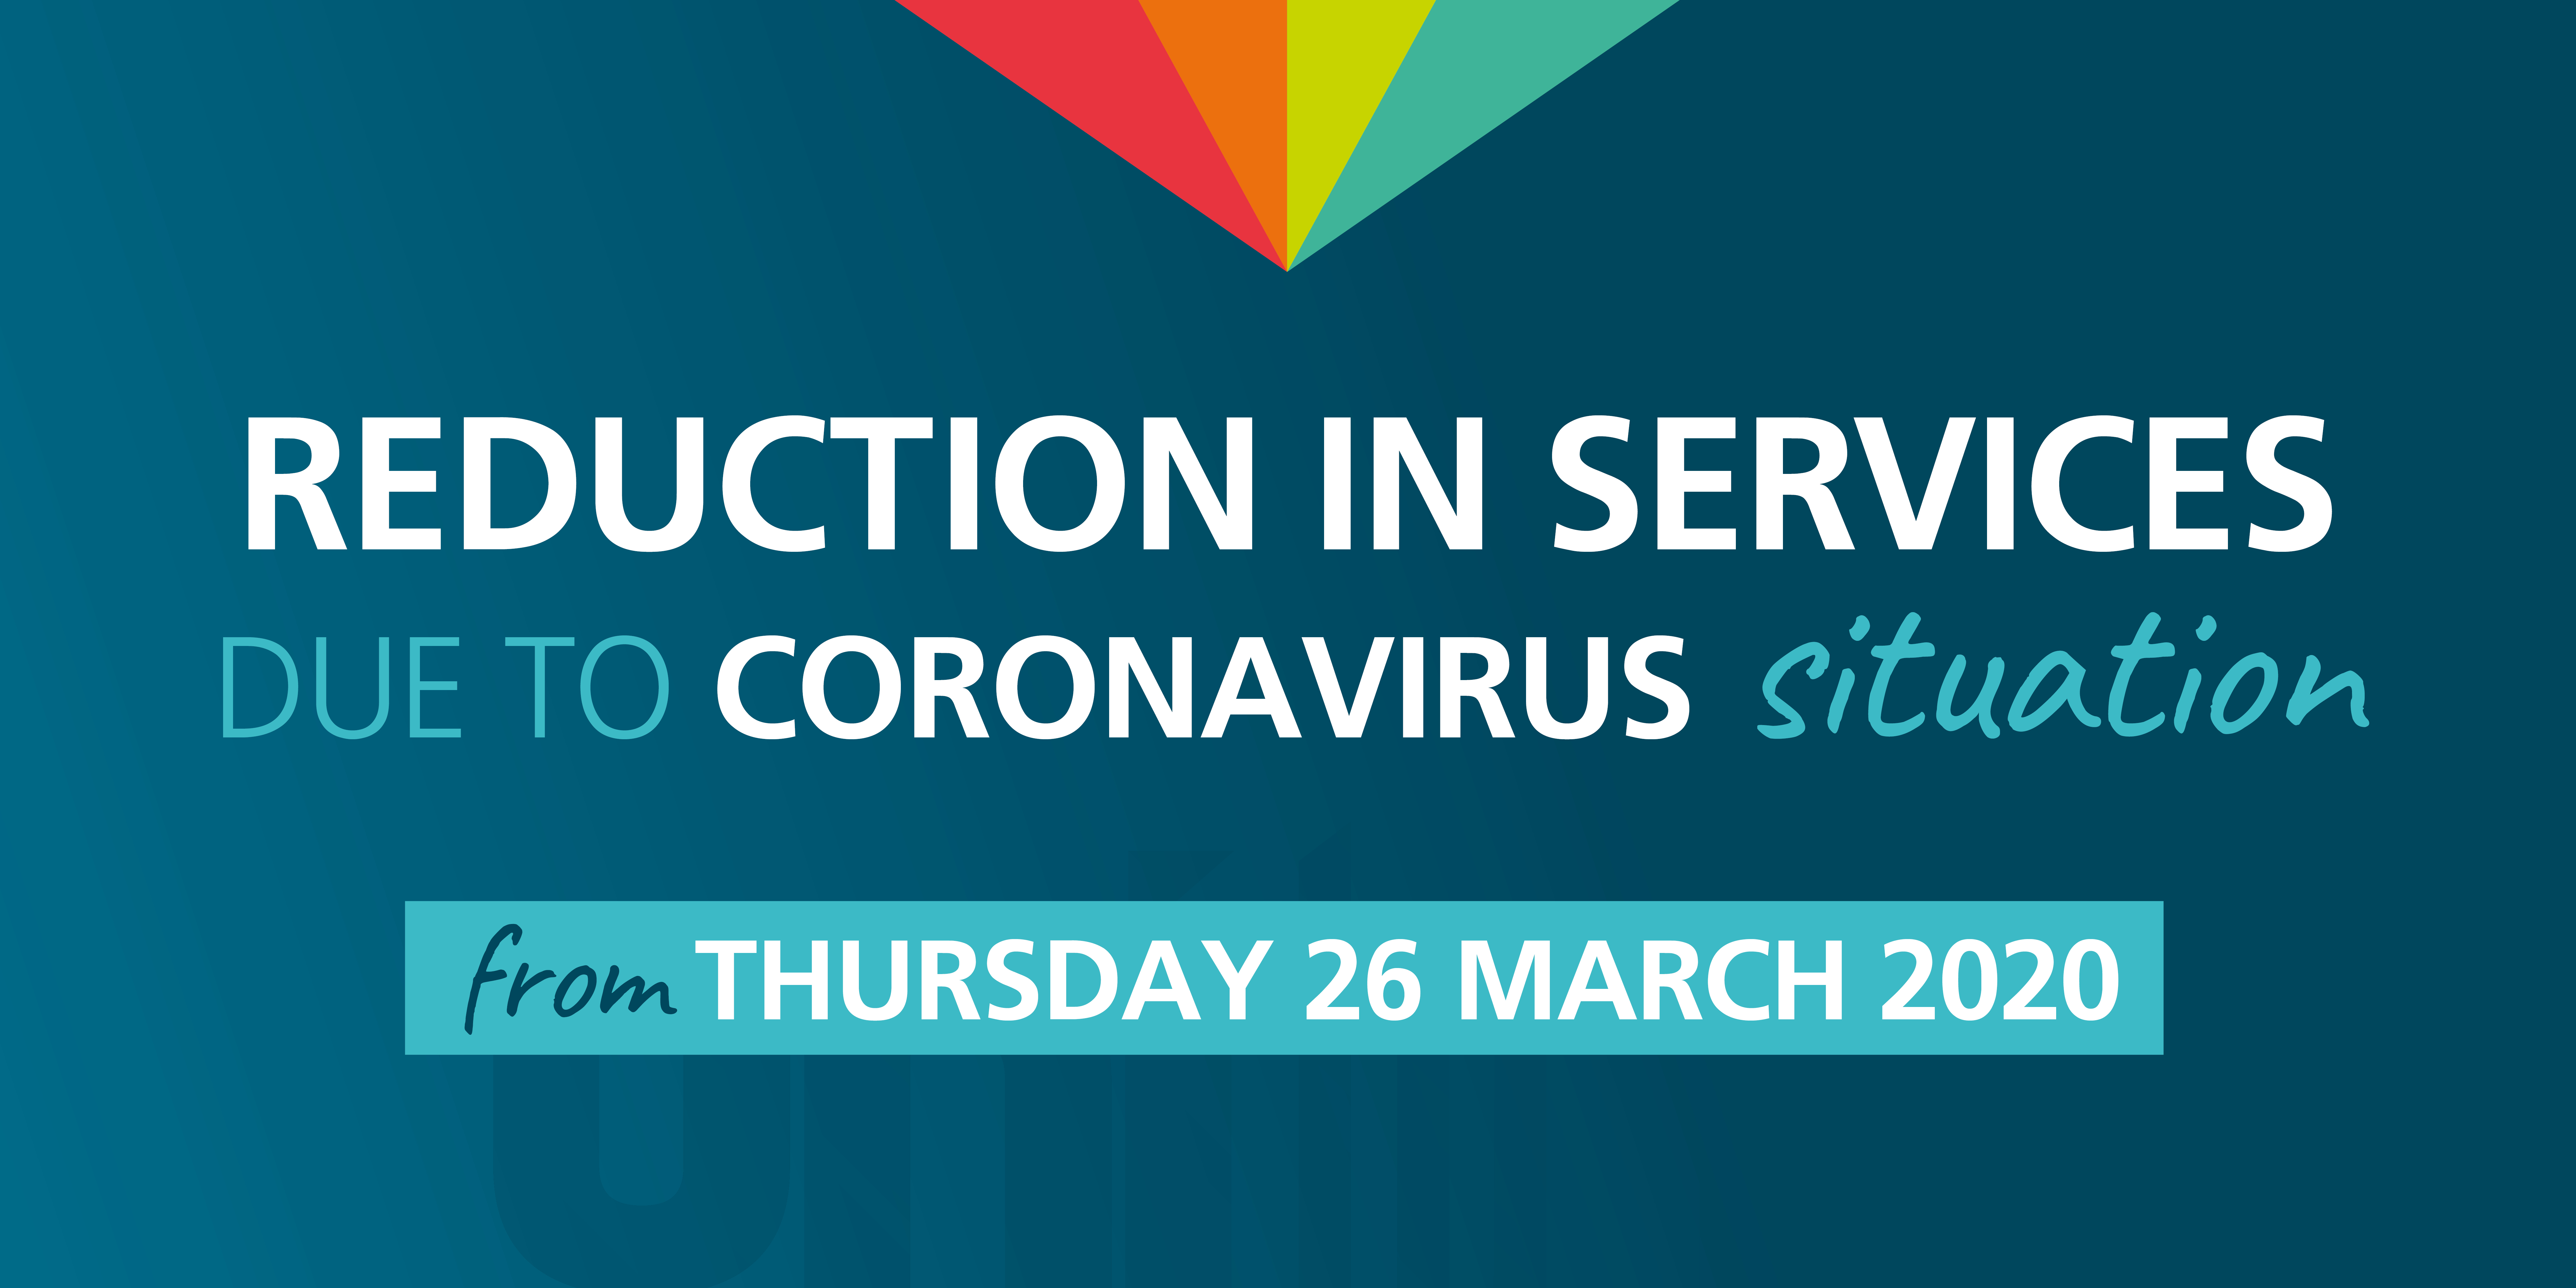 Image reading 'Reduction in services due to coronavirus situation - from Thursday 26 March 2020'